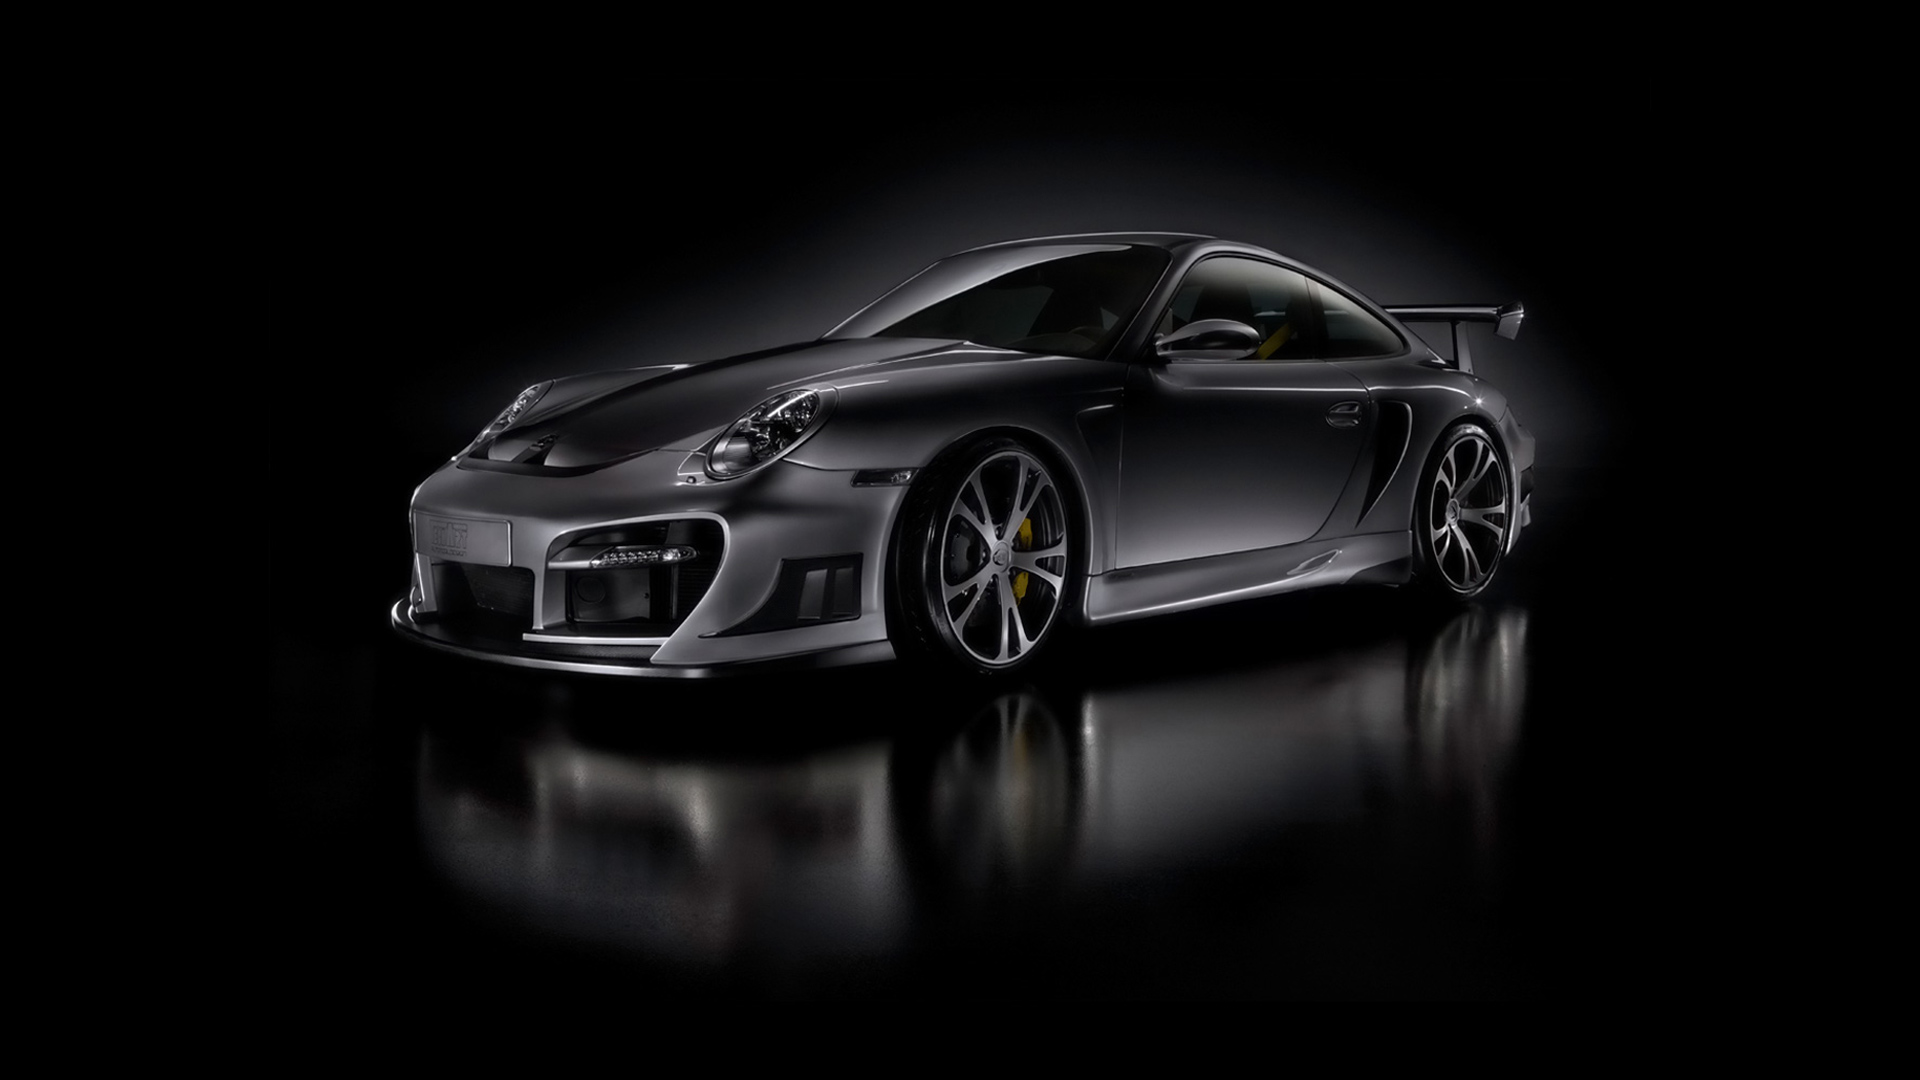 Dark Porsche GT Street Racing HDTV 1080p Wallpapers HD Wallpapers 1920x1080